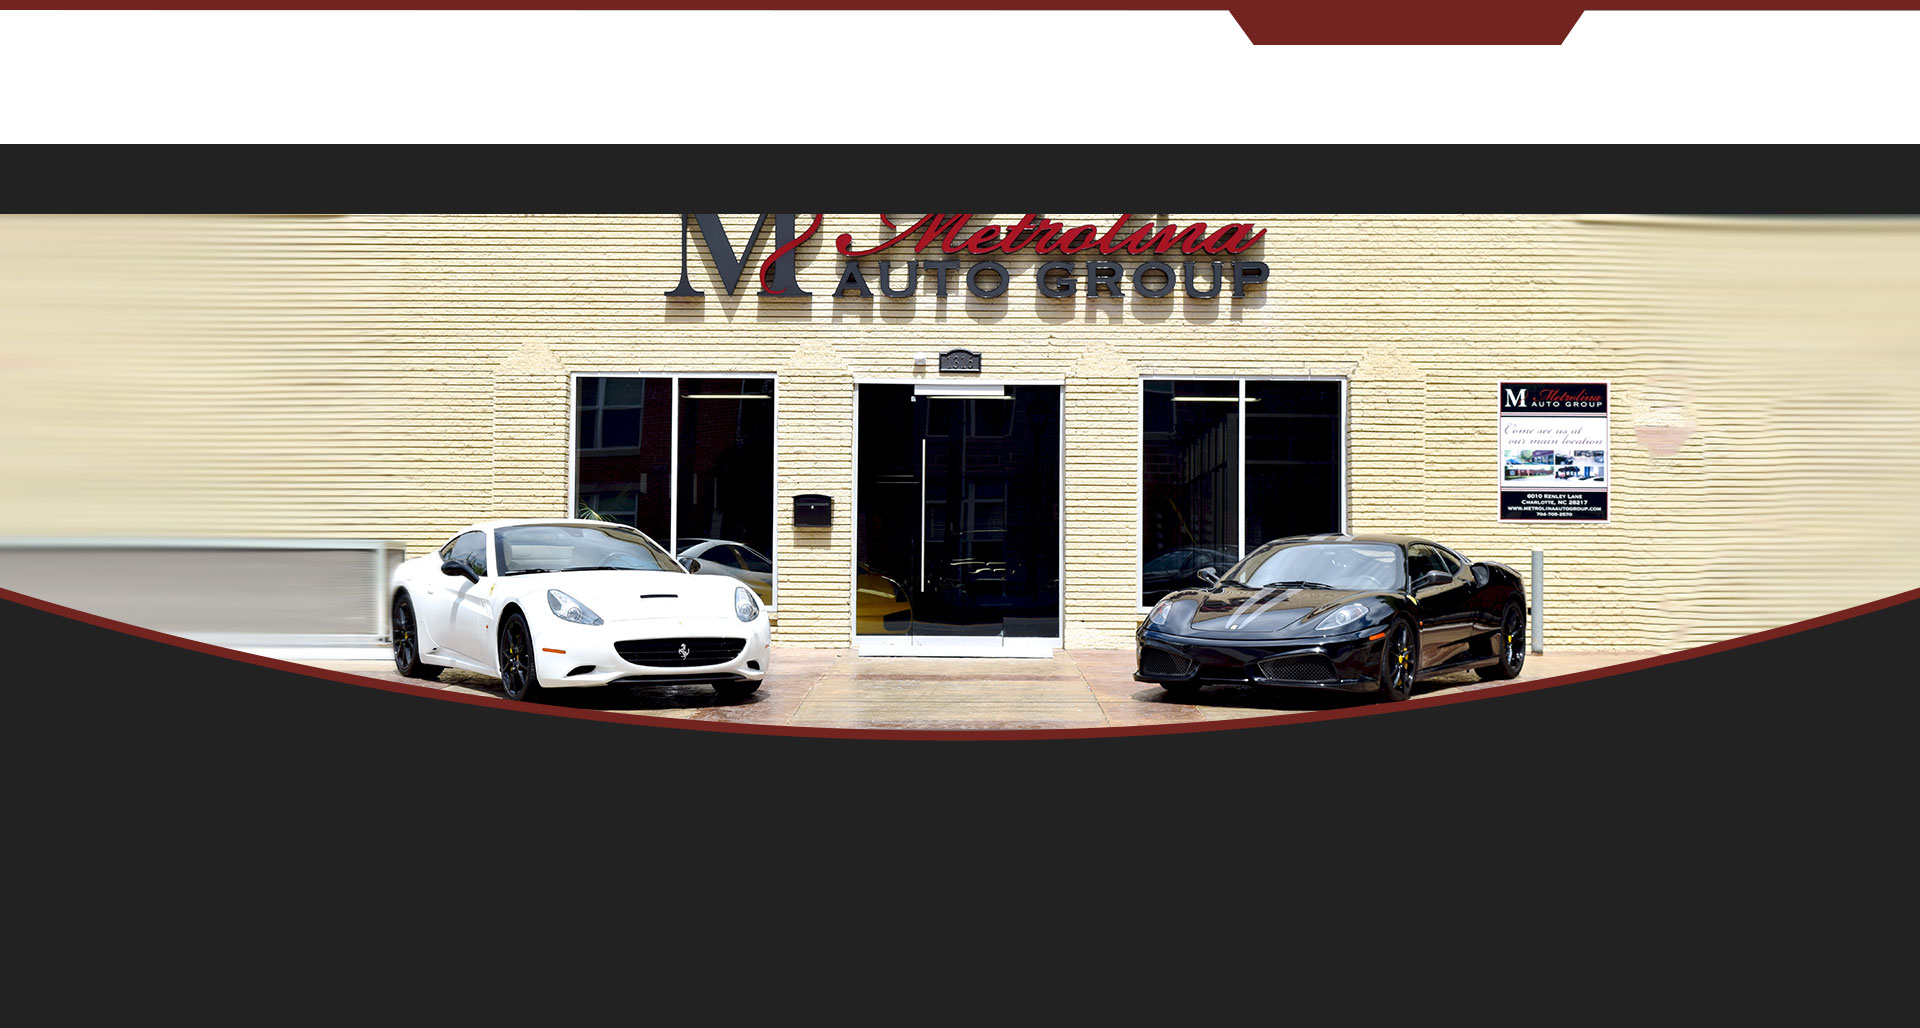 Used Cars North Tryon Street Charlotte Nc